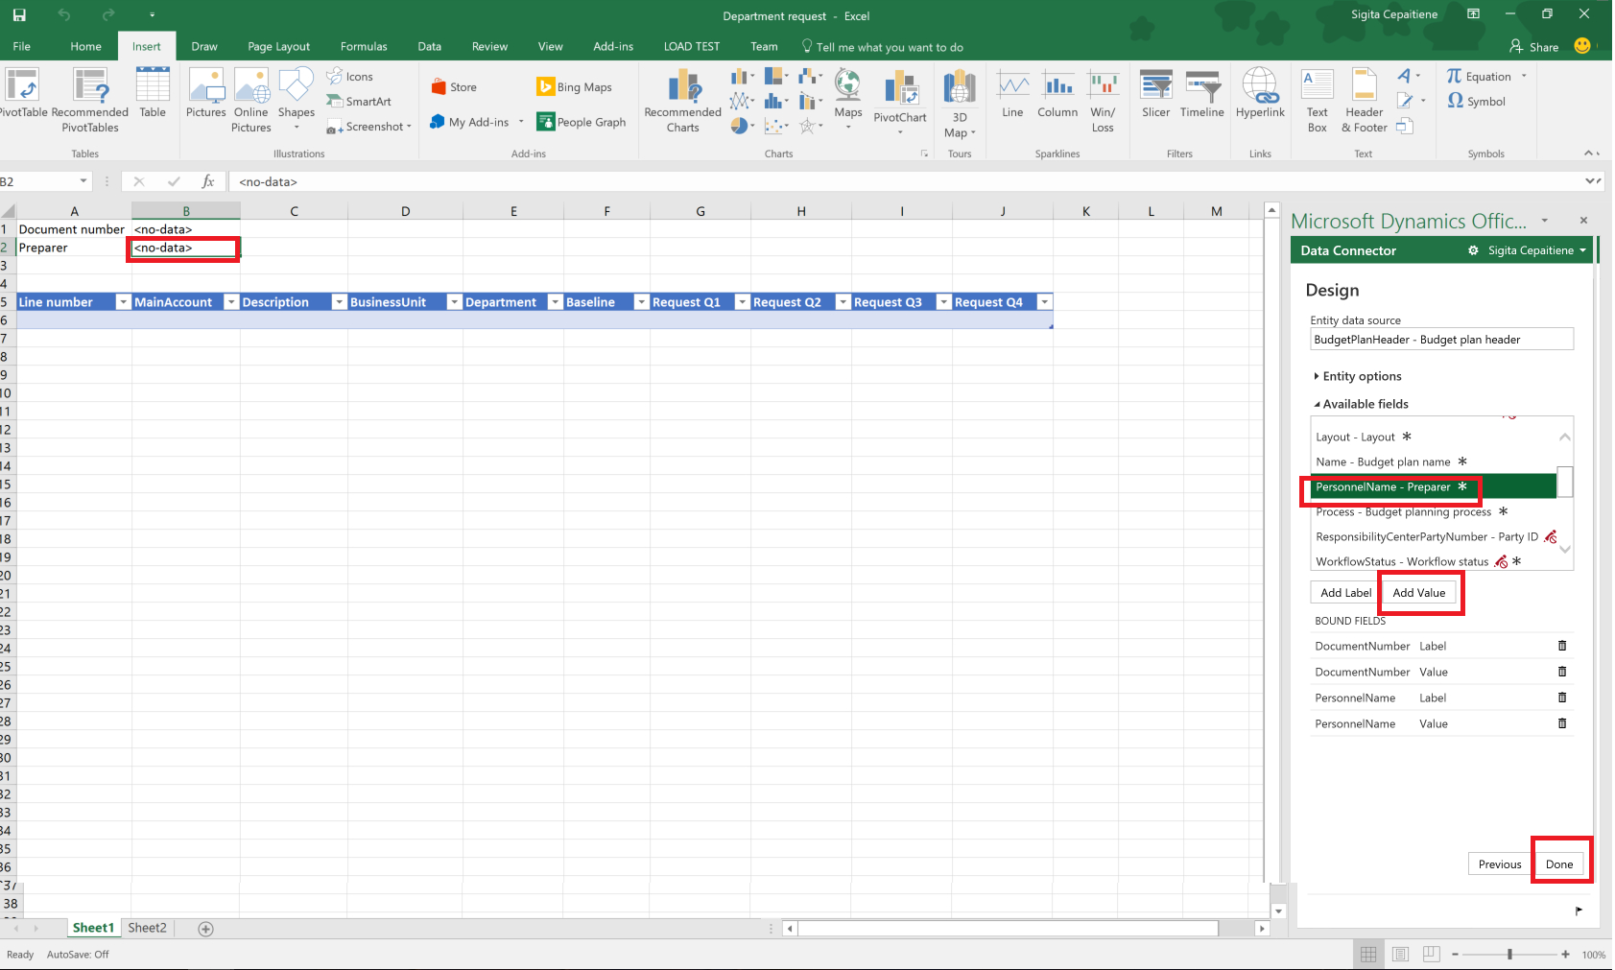 Open To Buy Spreadsheet Example Inside Budget Planning Templates For Excel  Finance  Operations